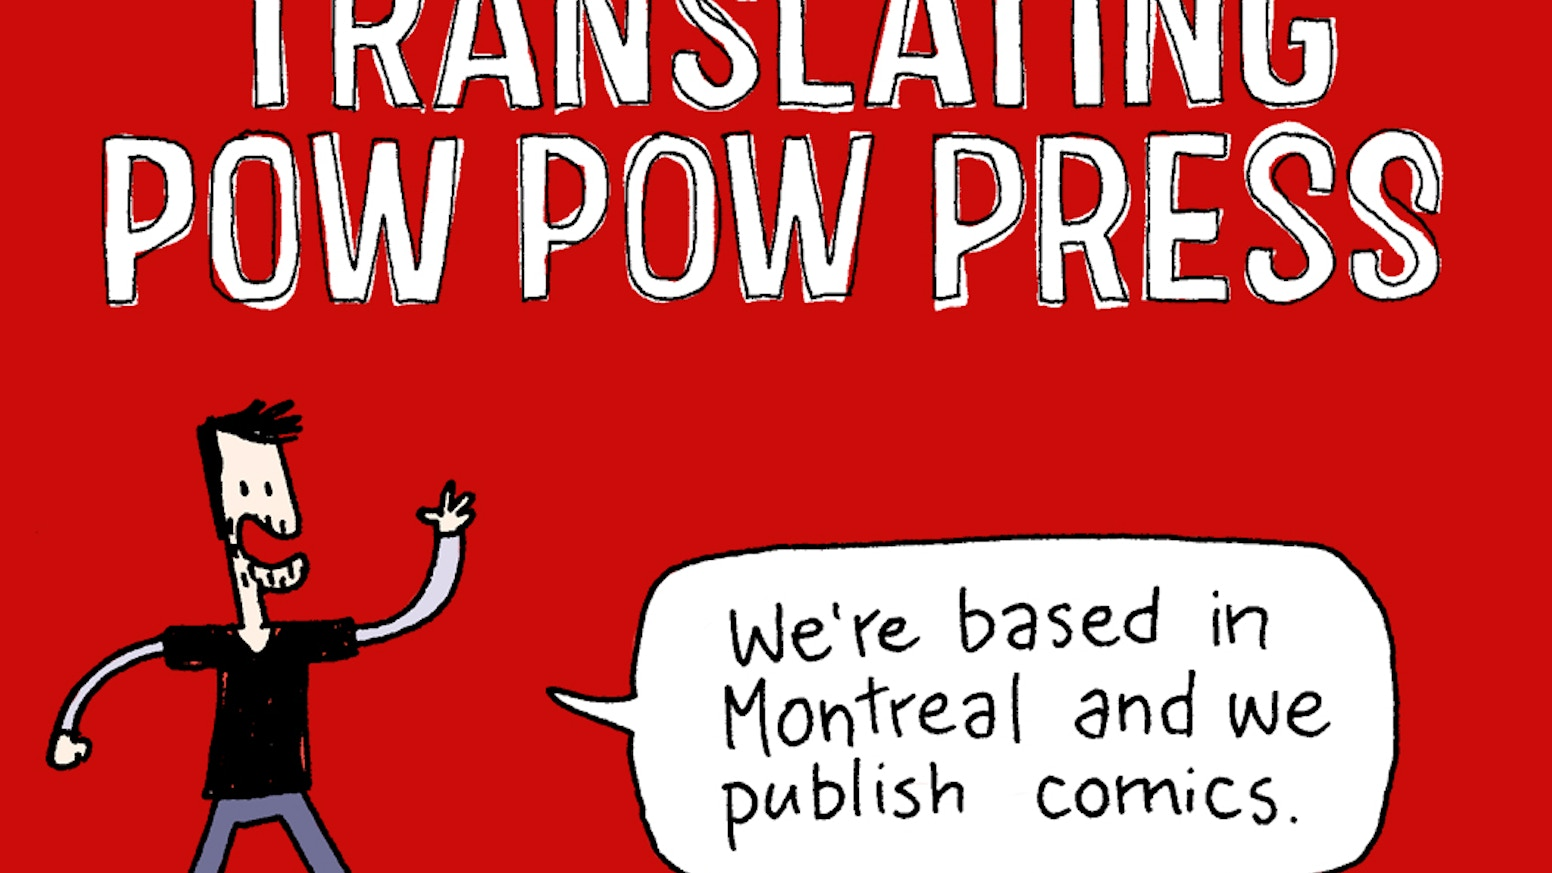 We are a Montreal-based publisher. Our authors wish to translate their comics from French to English. We want to help them do that.